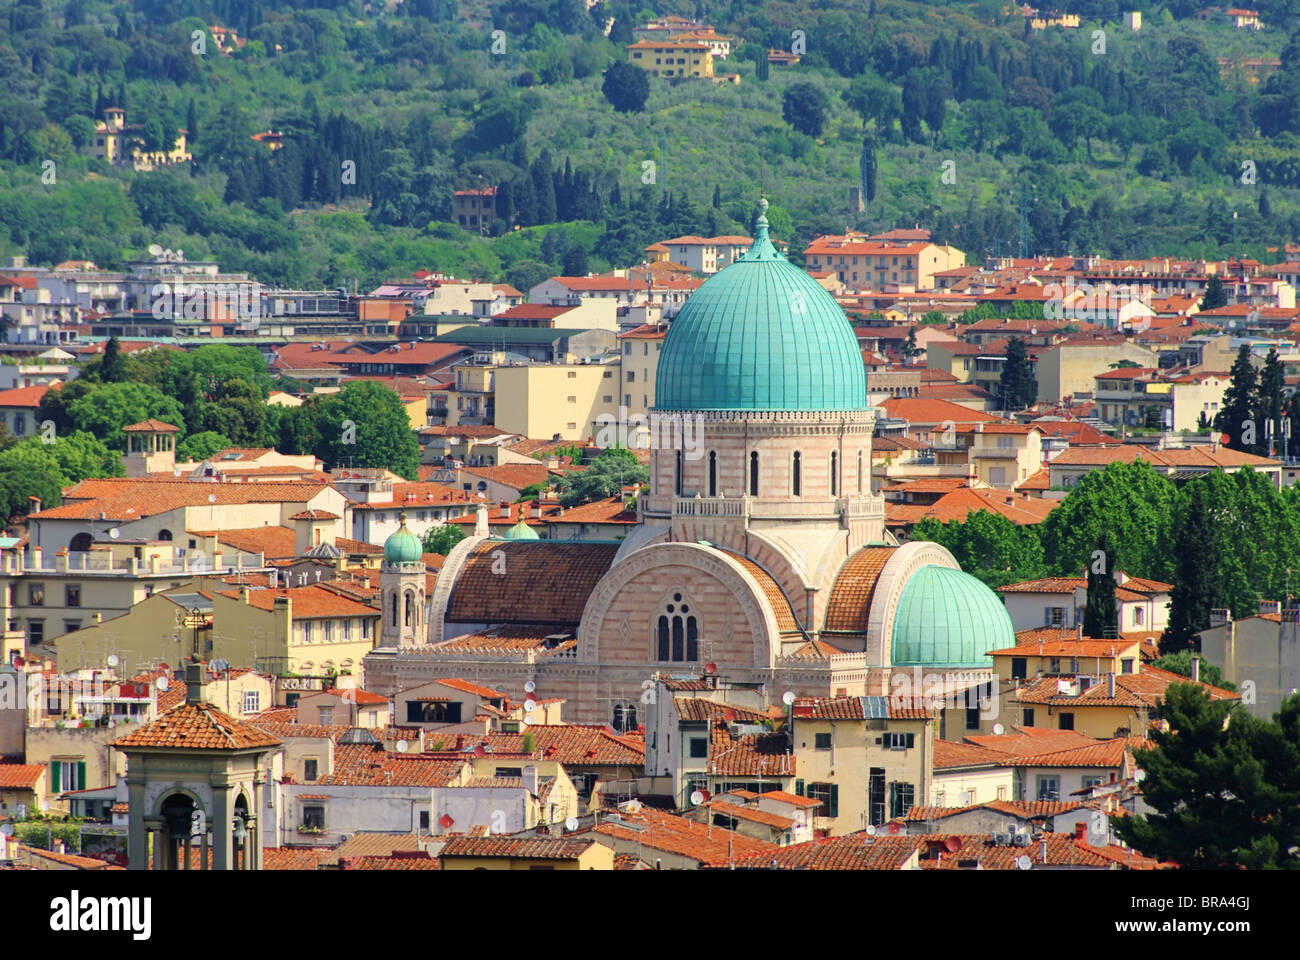 Florenz Synagoge - Great Synagogue of Florence 01 Stock Photo